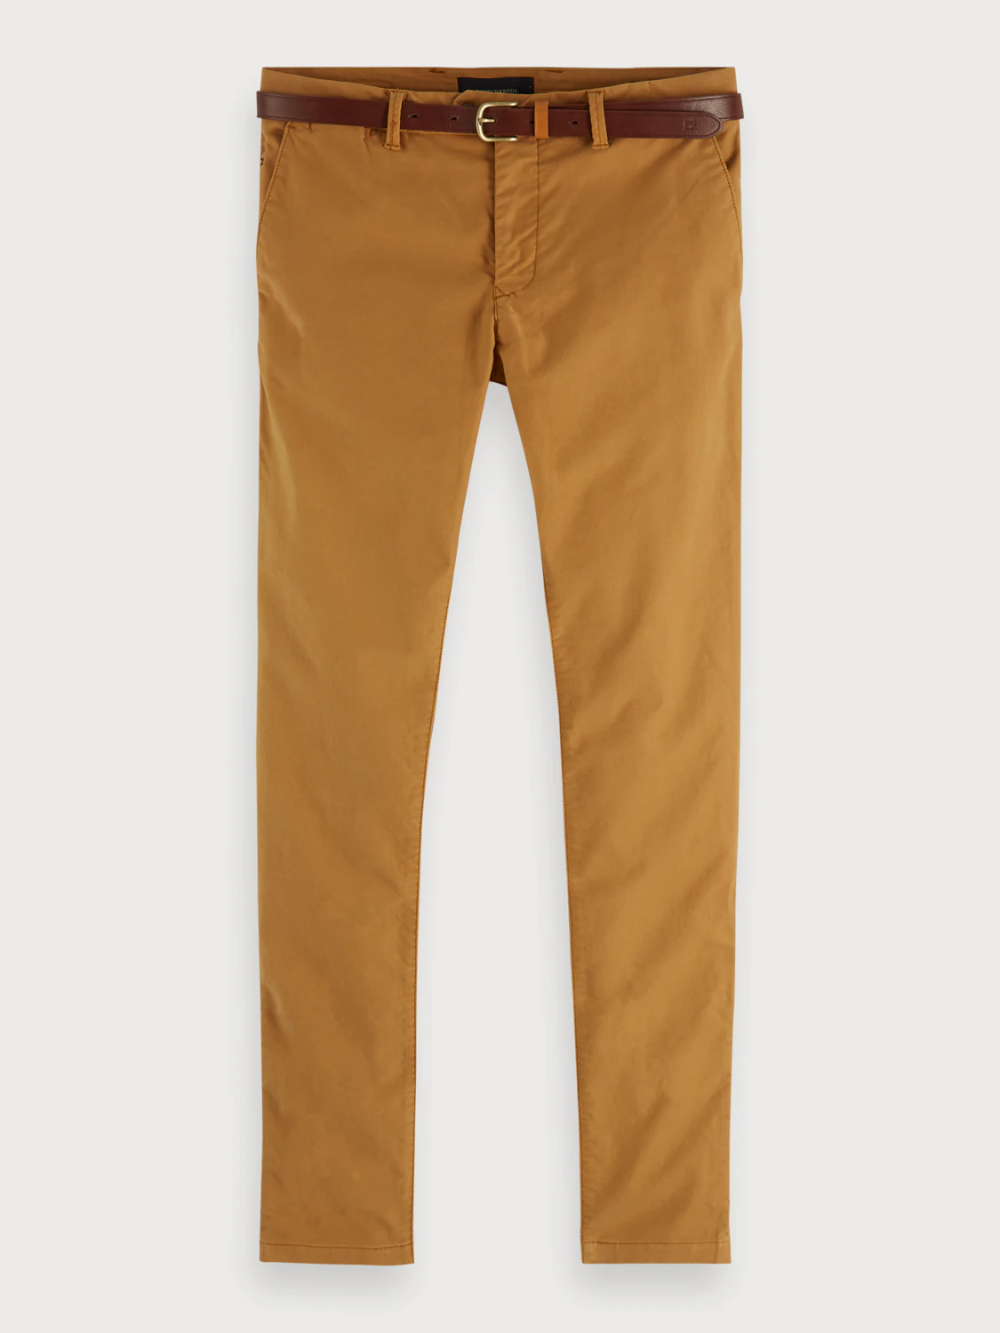 Mott Garment Dyed Chinos Super Slim Fit Garment Dye Chinos Slim Fit